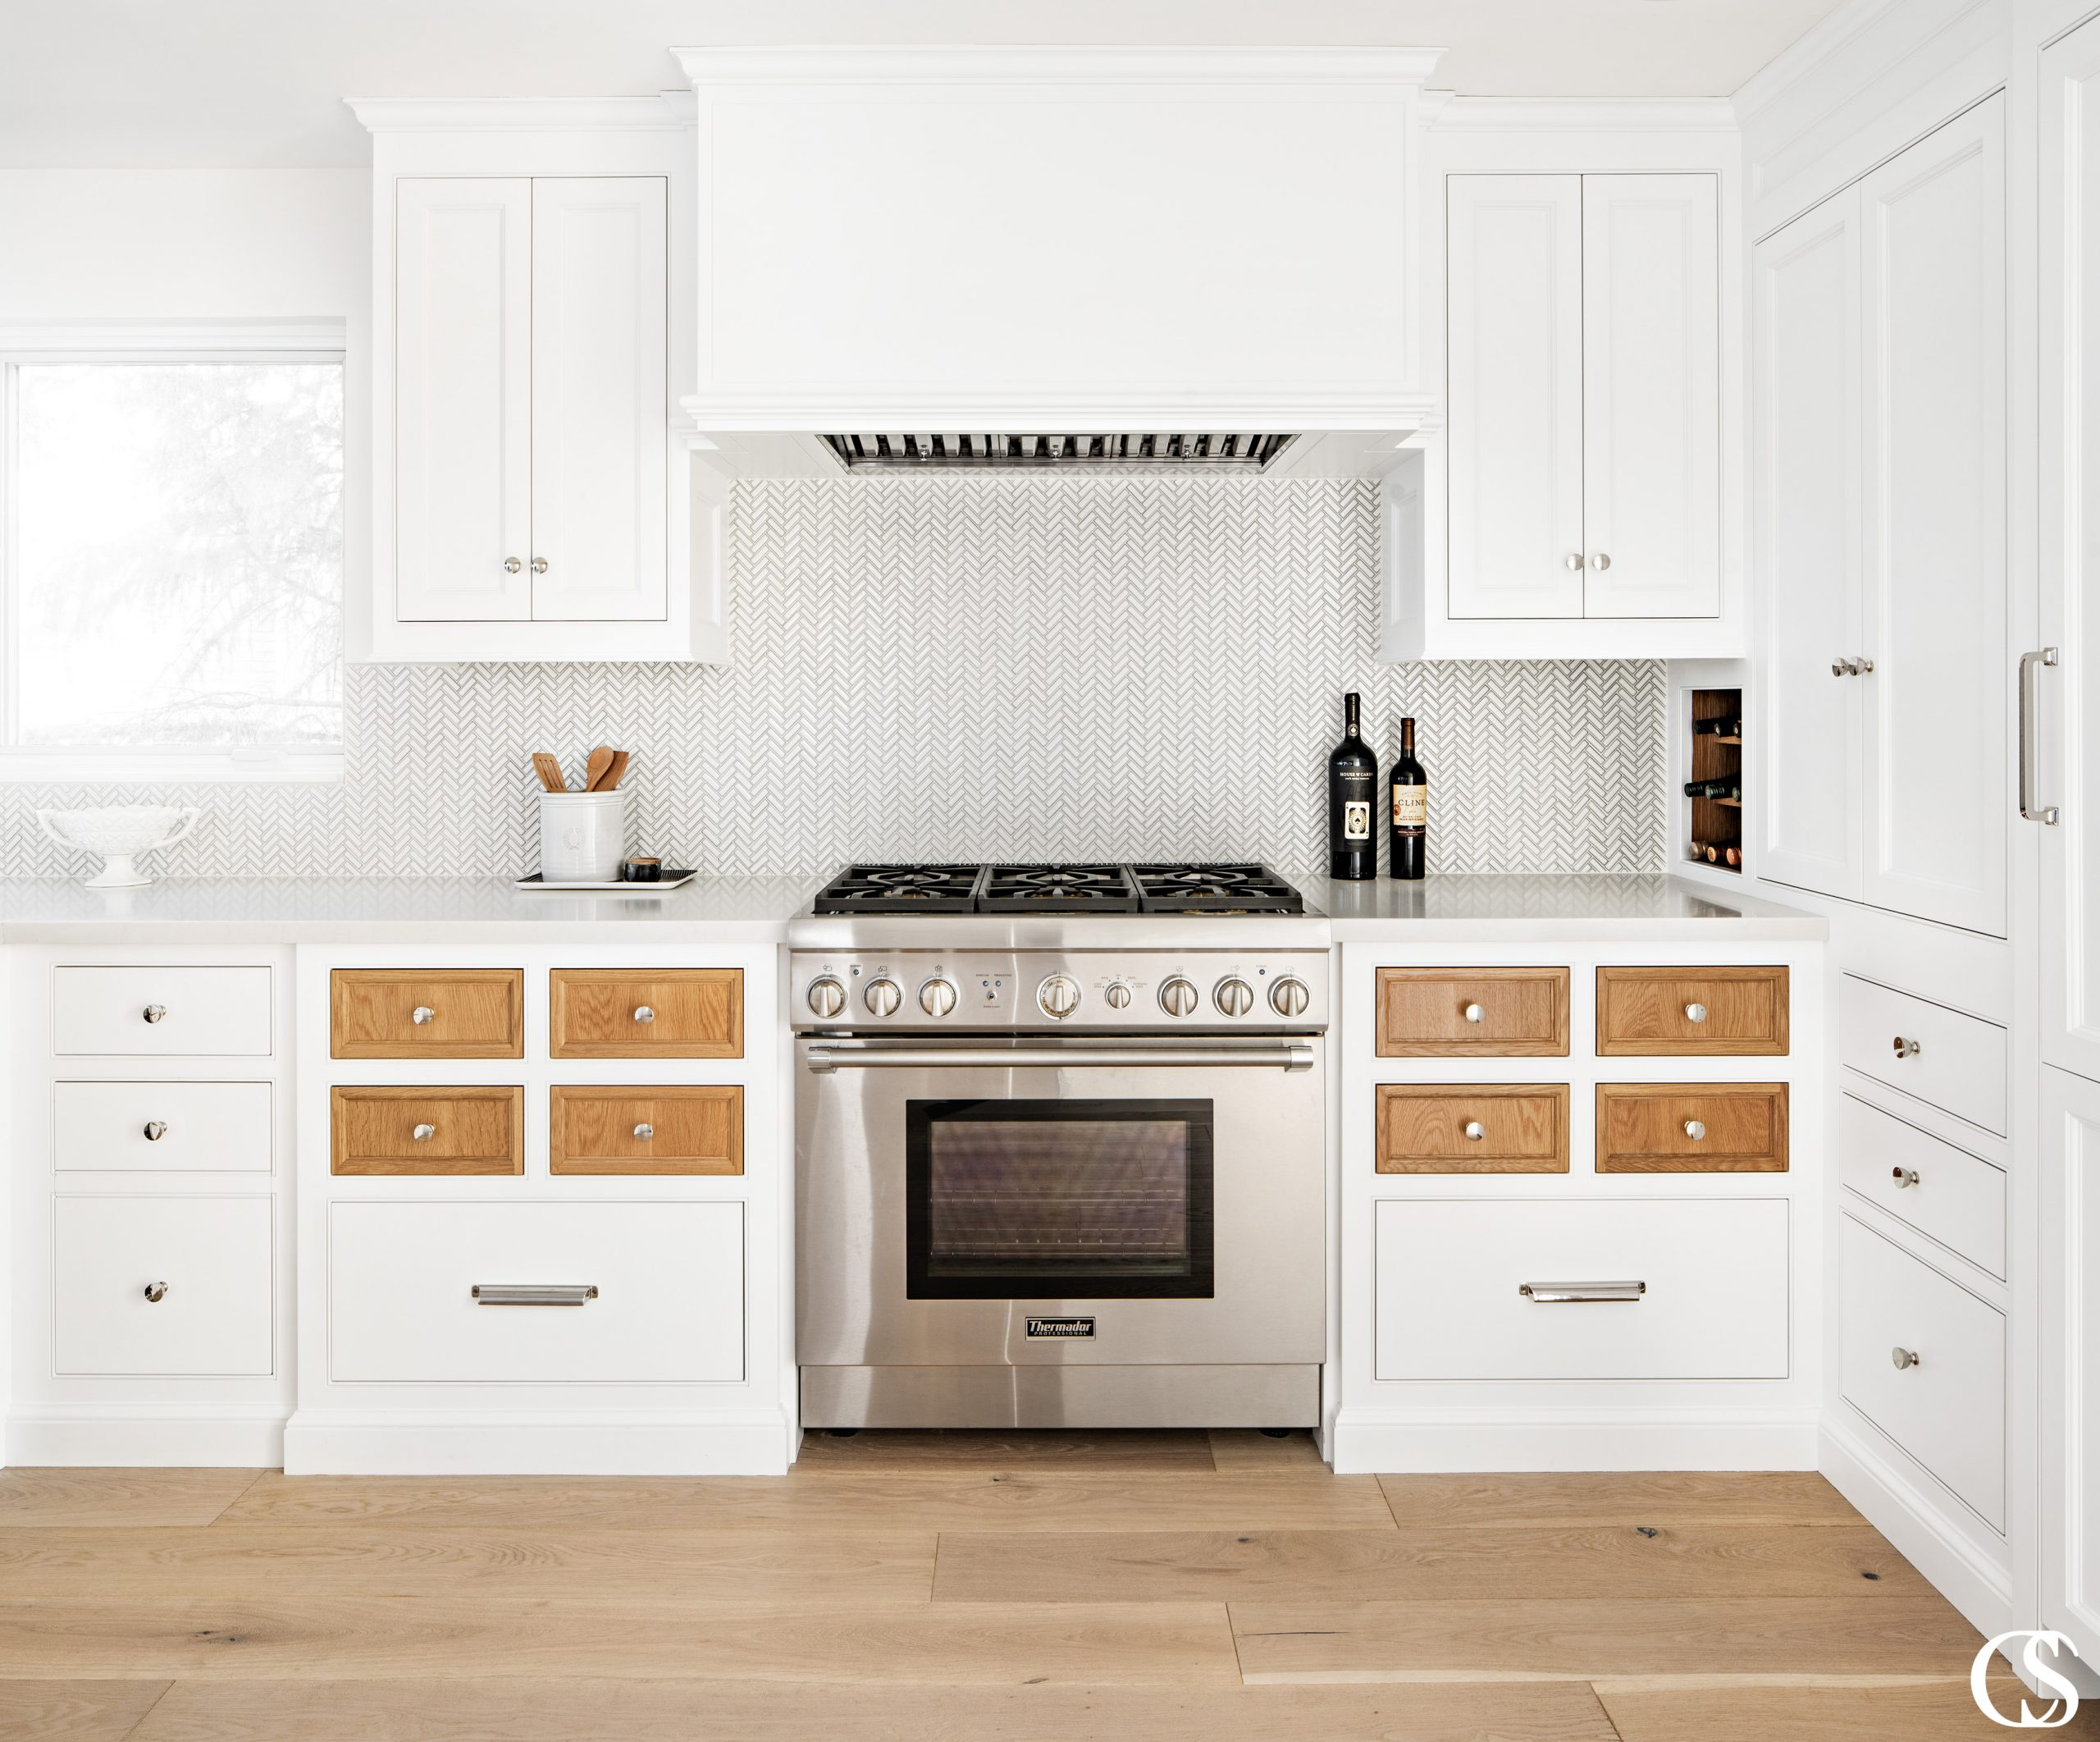 Who says every drawer and cupboard door have to match? These kitchen cabinet doors feature contrasting stained wood against the rest of the white painted cabinets, to great effect!